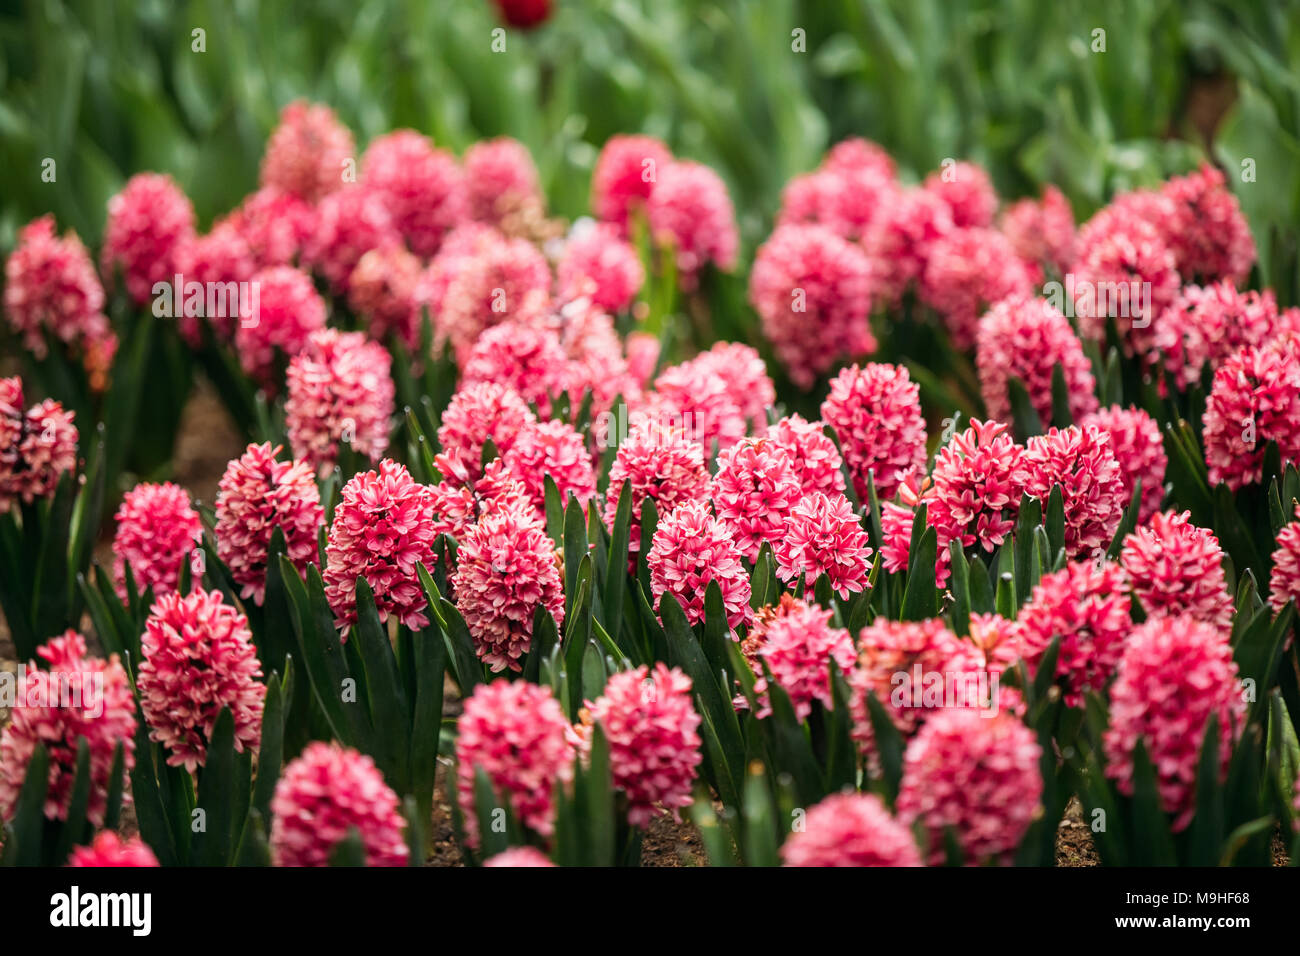 Blooming Pink Flowers Of Hyacinth In Spring Garden Stock Photo